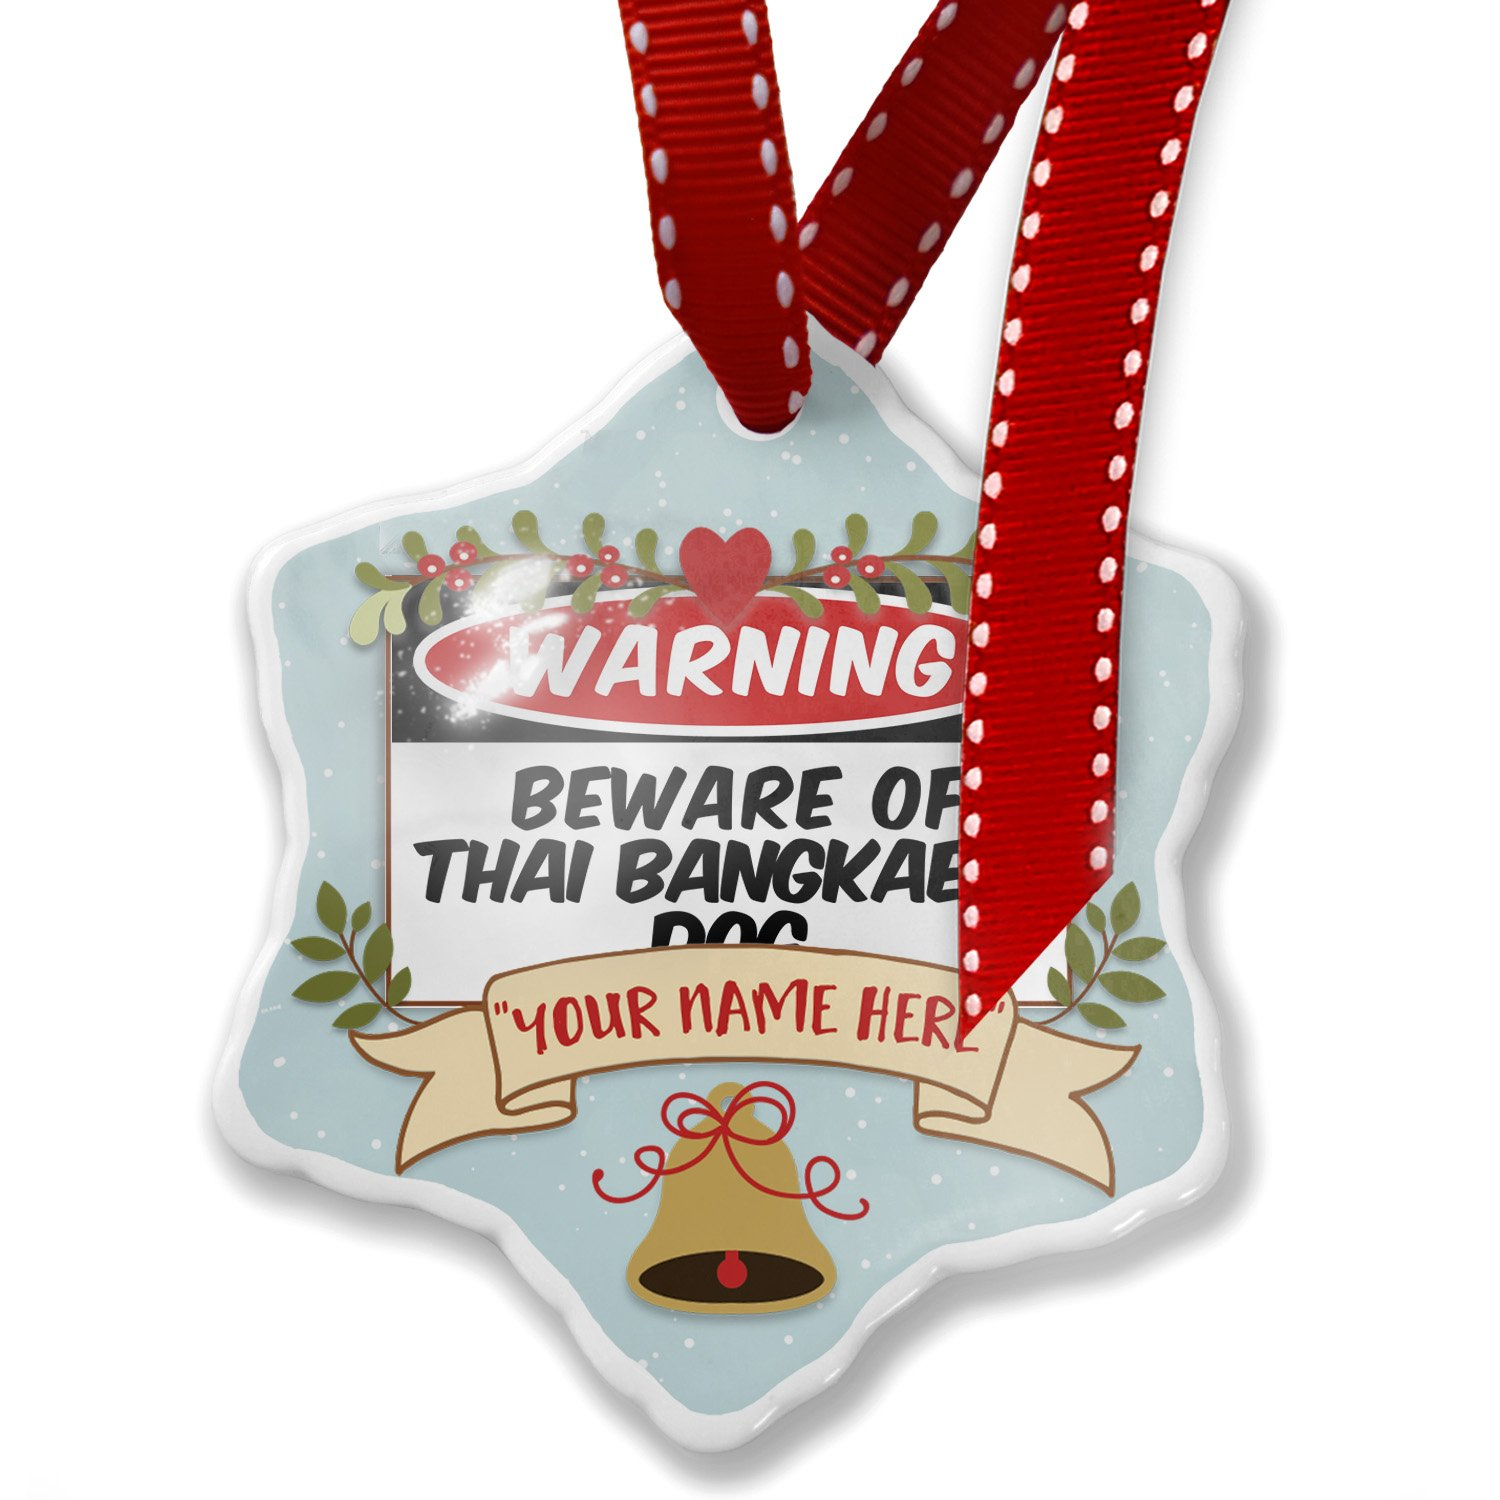 Add Your Own Custom Name, Beware of the Thai Bangkaew Dog from Thailand Christmas Ornament NEONBLOND by NEONBLOND